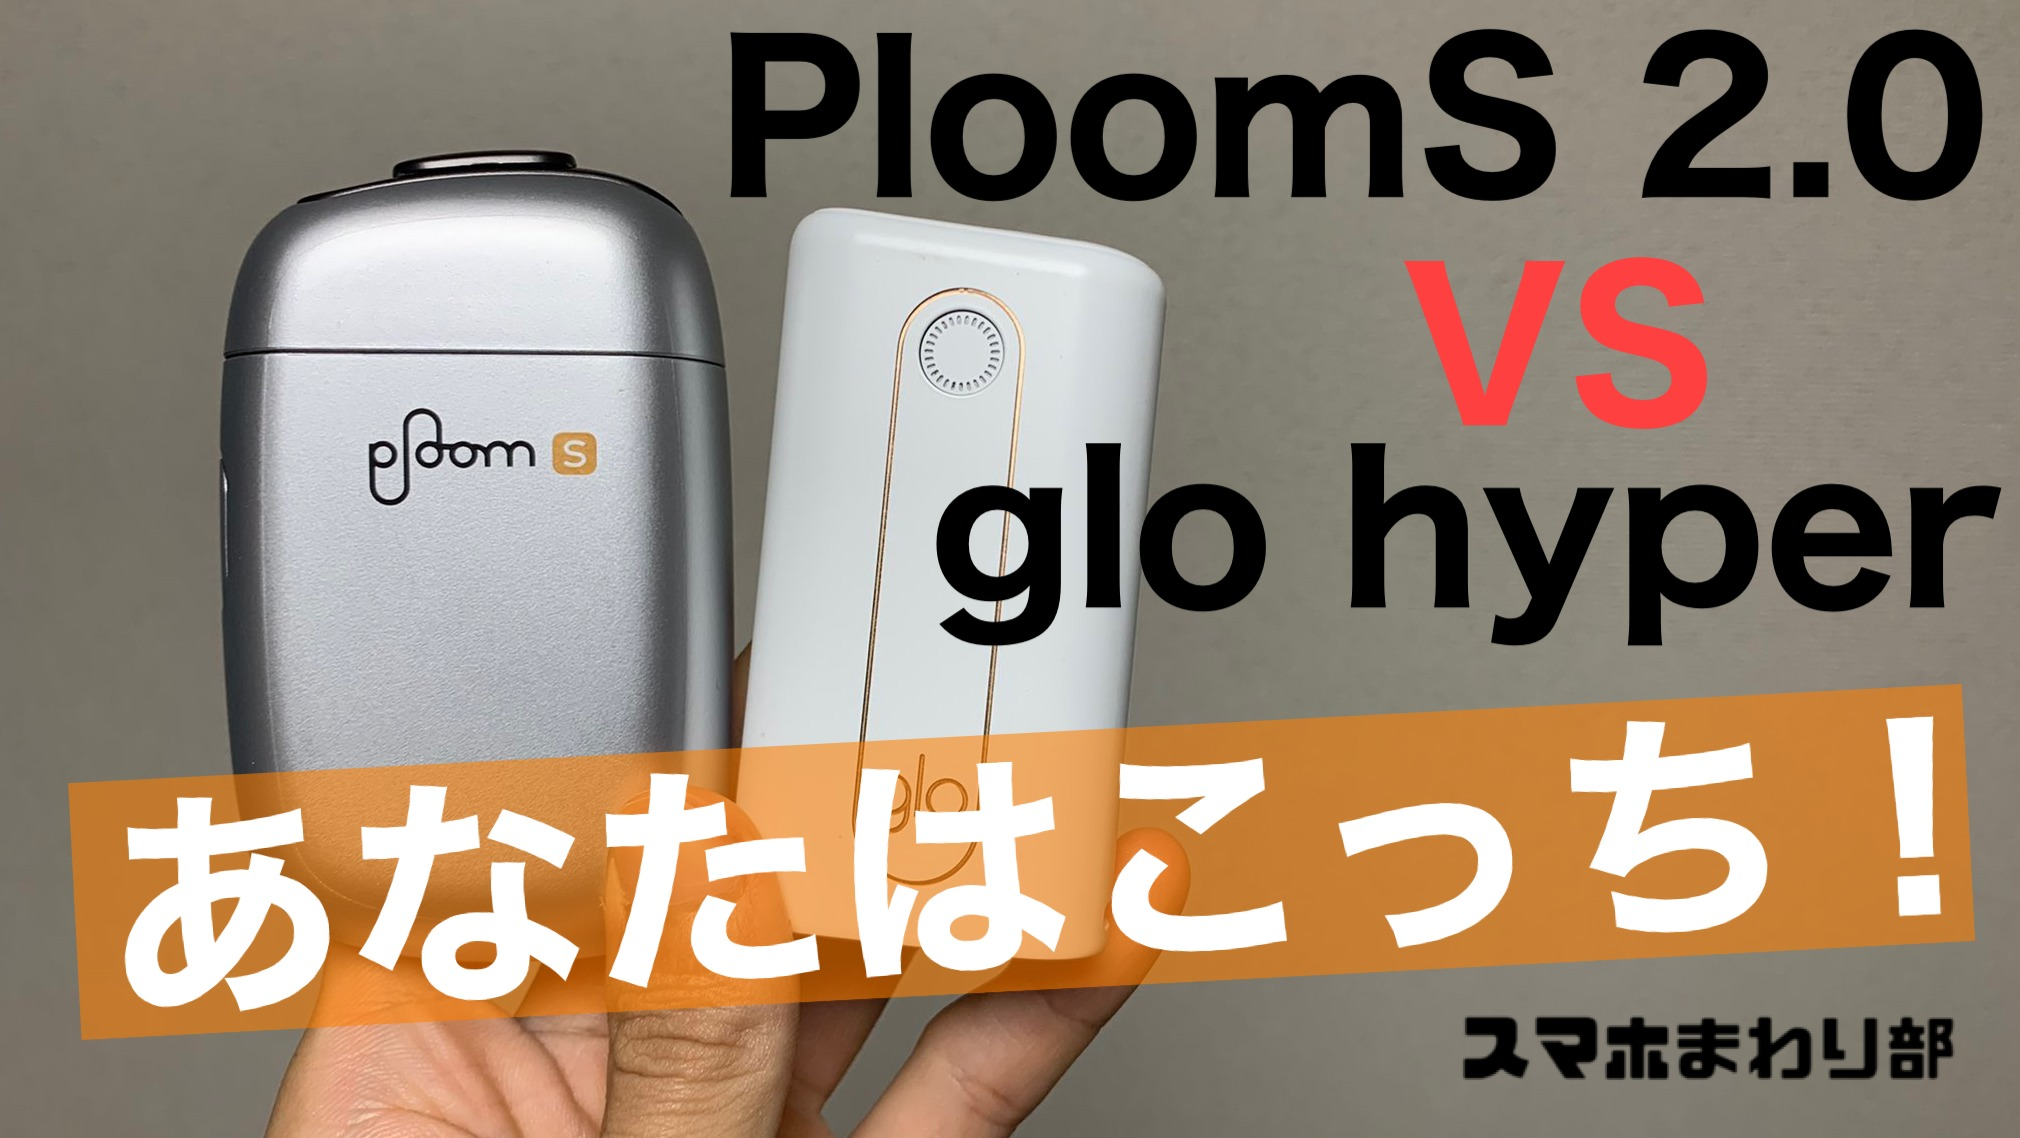 plooms-glohyper-comparison eyecatch